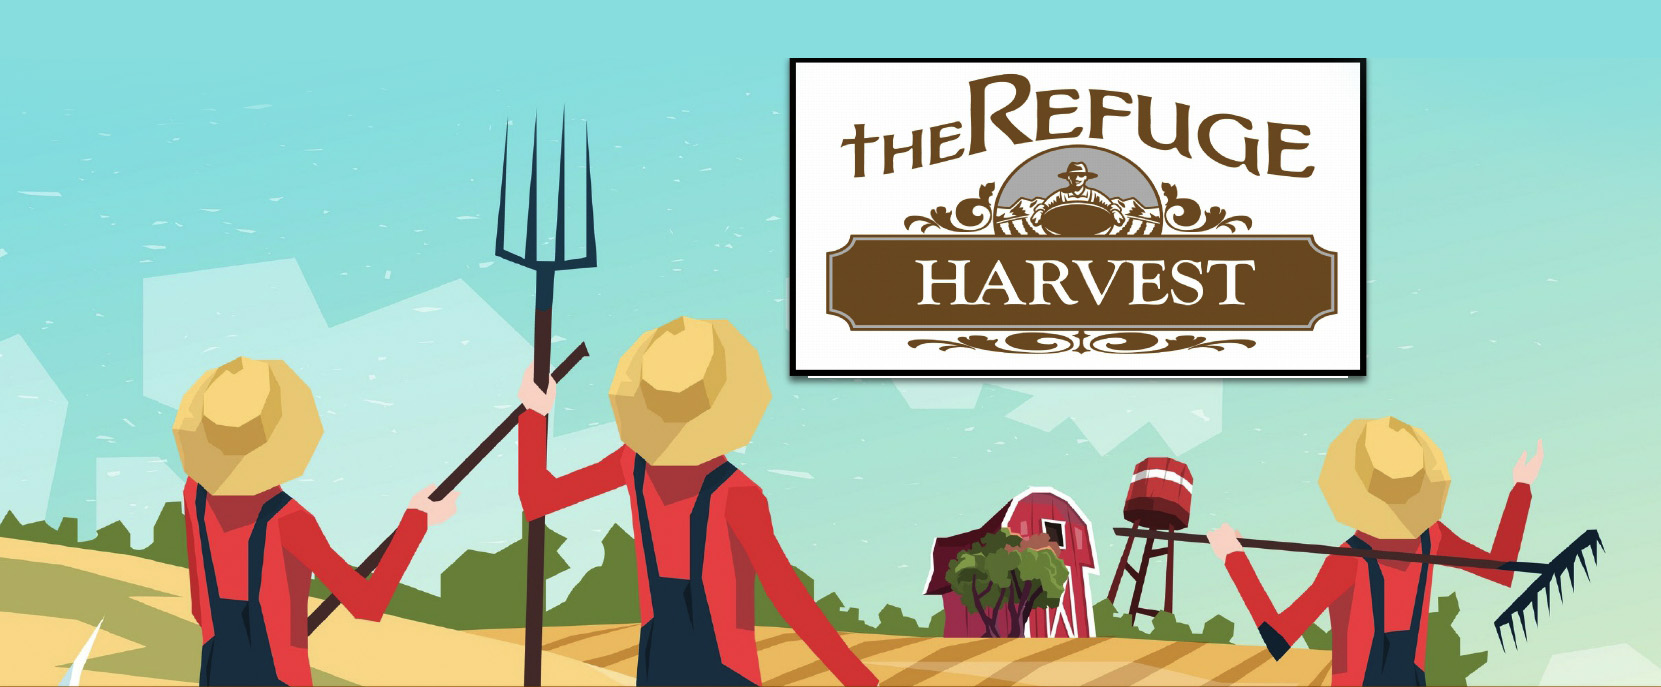 Harvest: A Community Family Festival